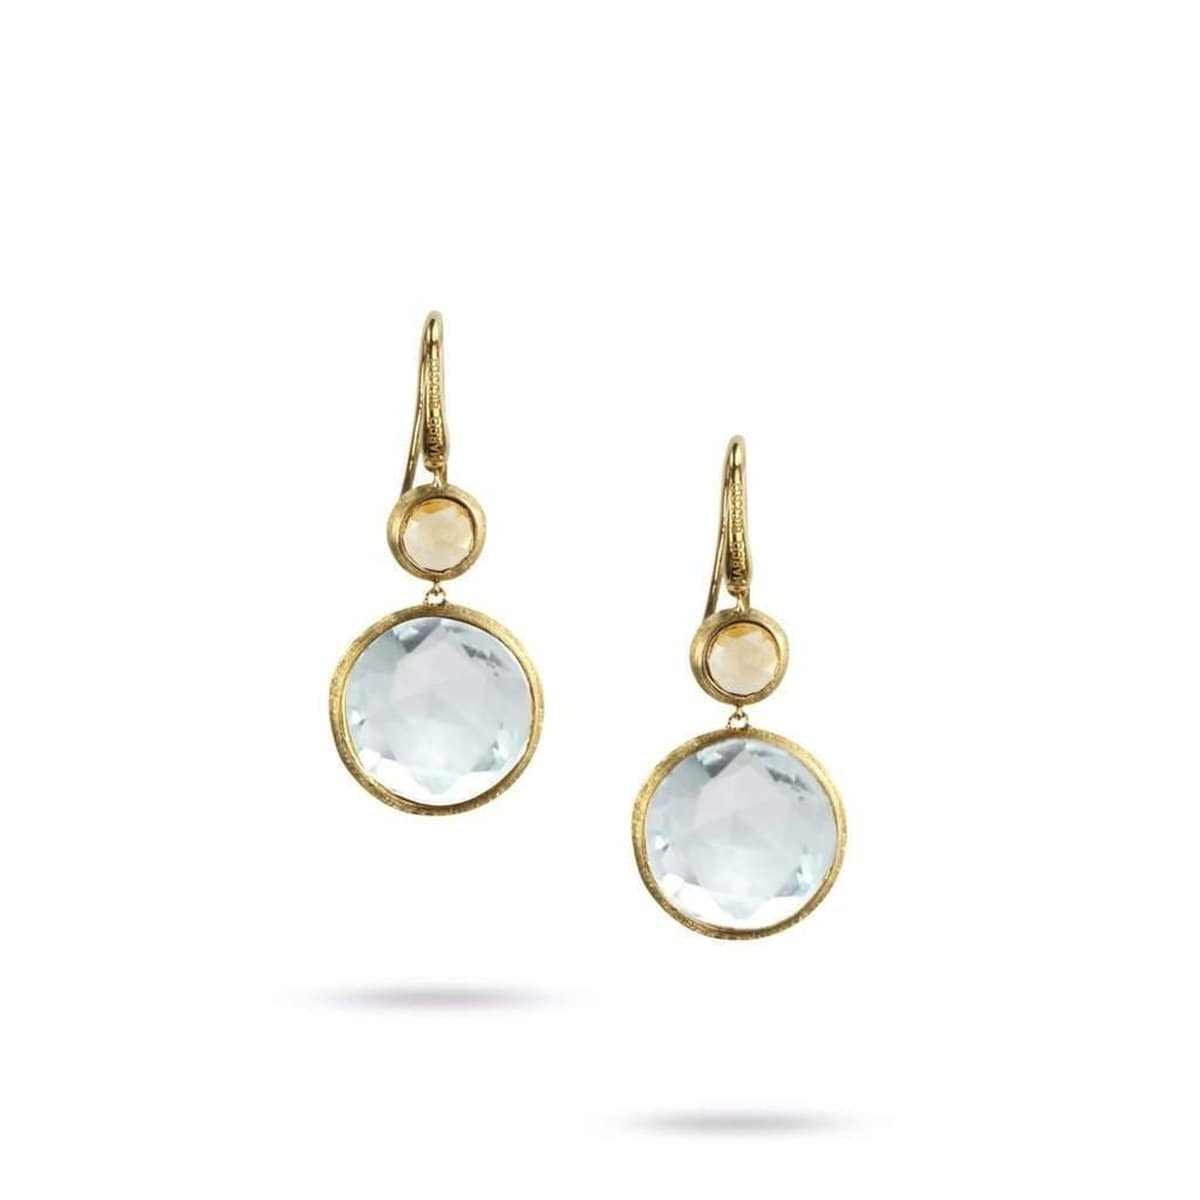 Jaipur Blue Topaz Citrine Earrings - OB900 A MIX112 Y-Marco Bicego-Renee Taylor Gallery